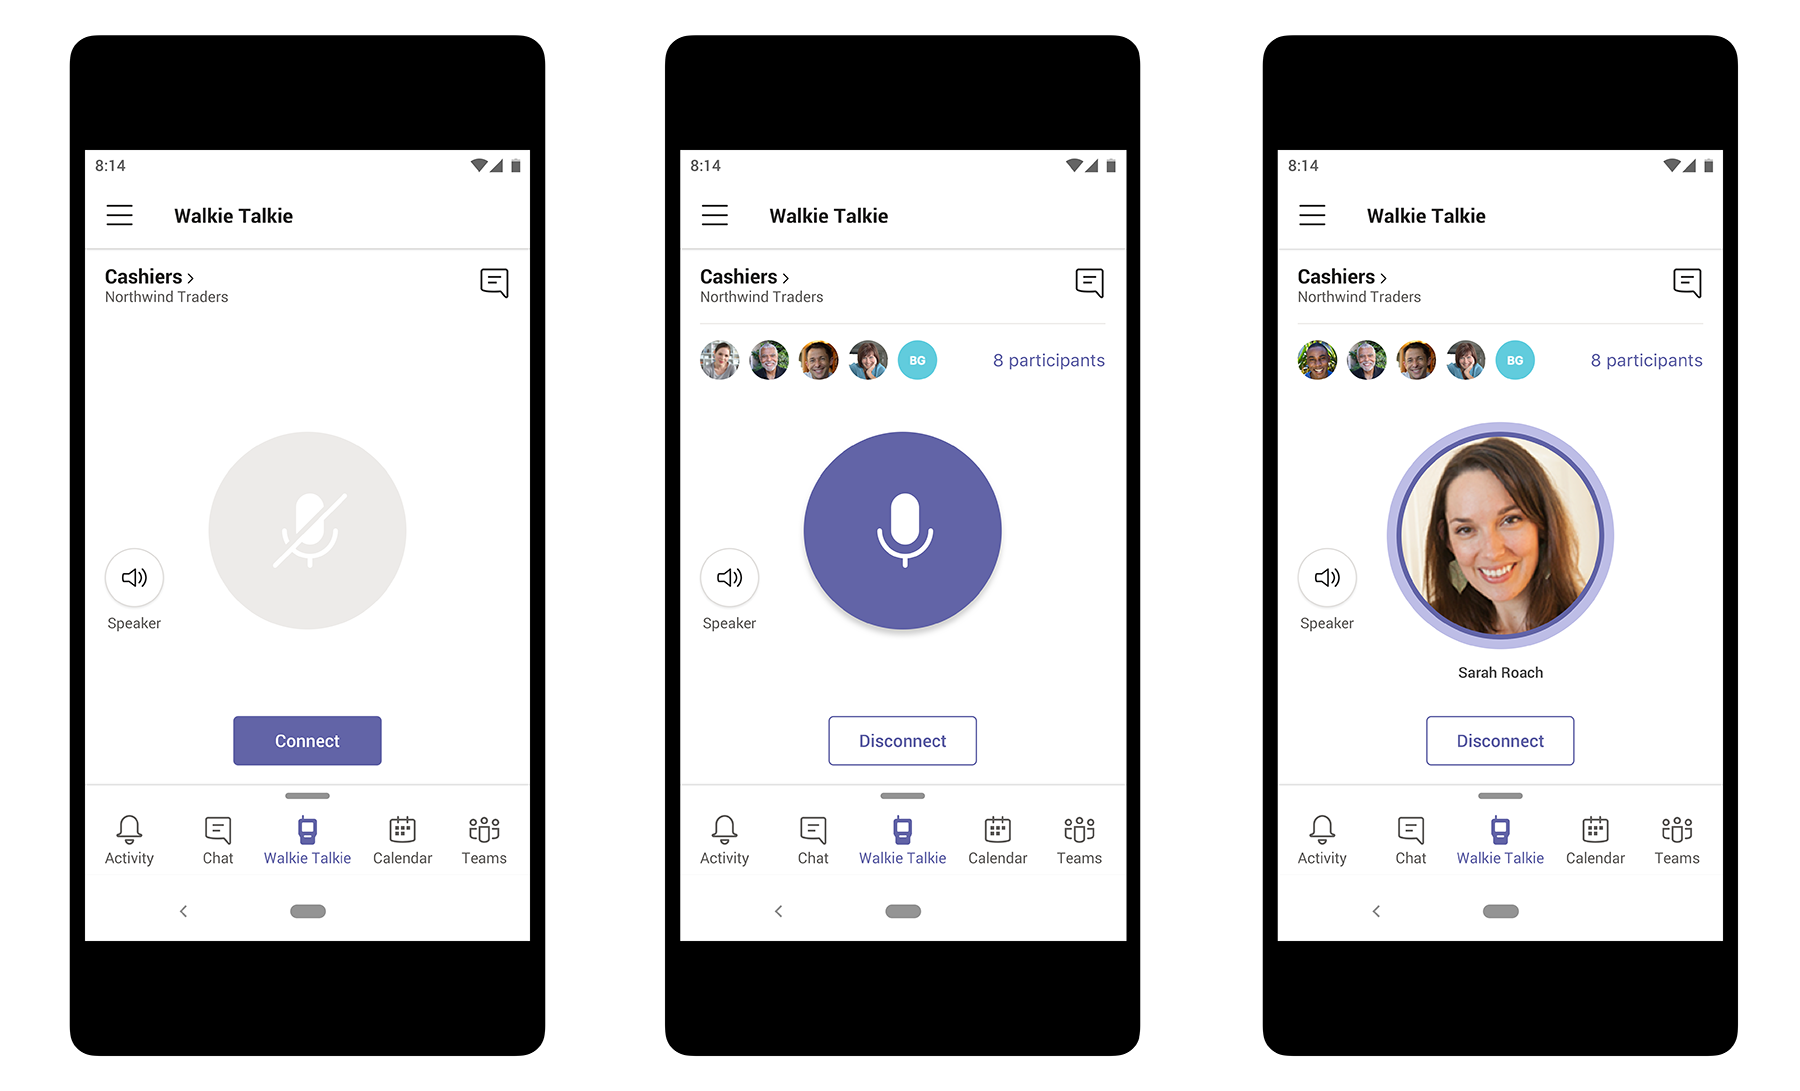 Image displaying the intuitive push-to-talk experience to connect team members in Microsoft Teams. Three phones are displayed at various stages in connecting a manager to her team of cashiers.